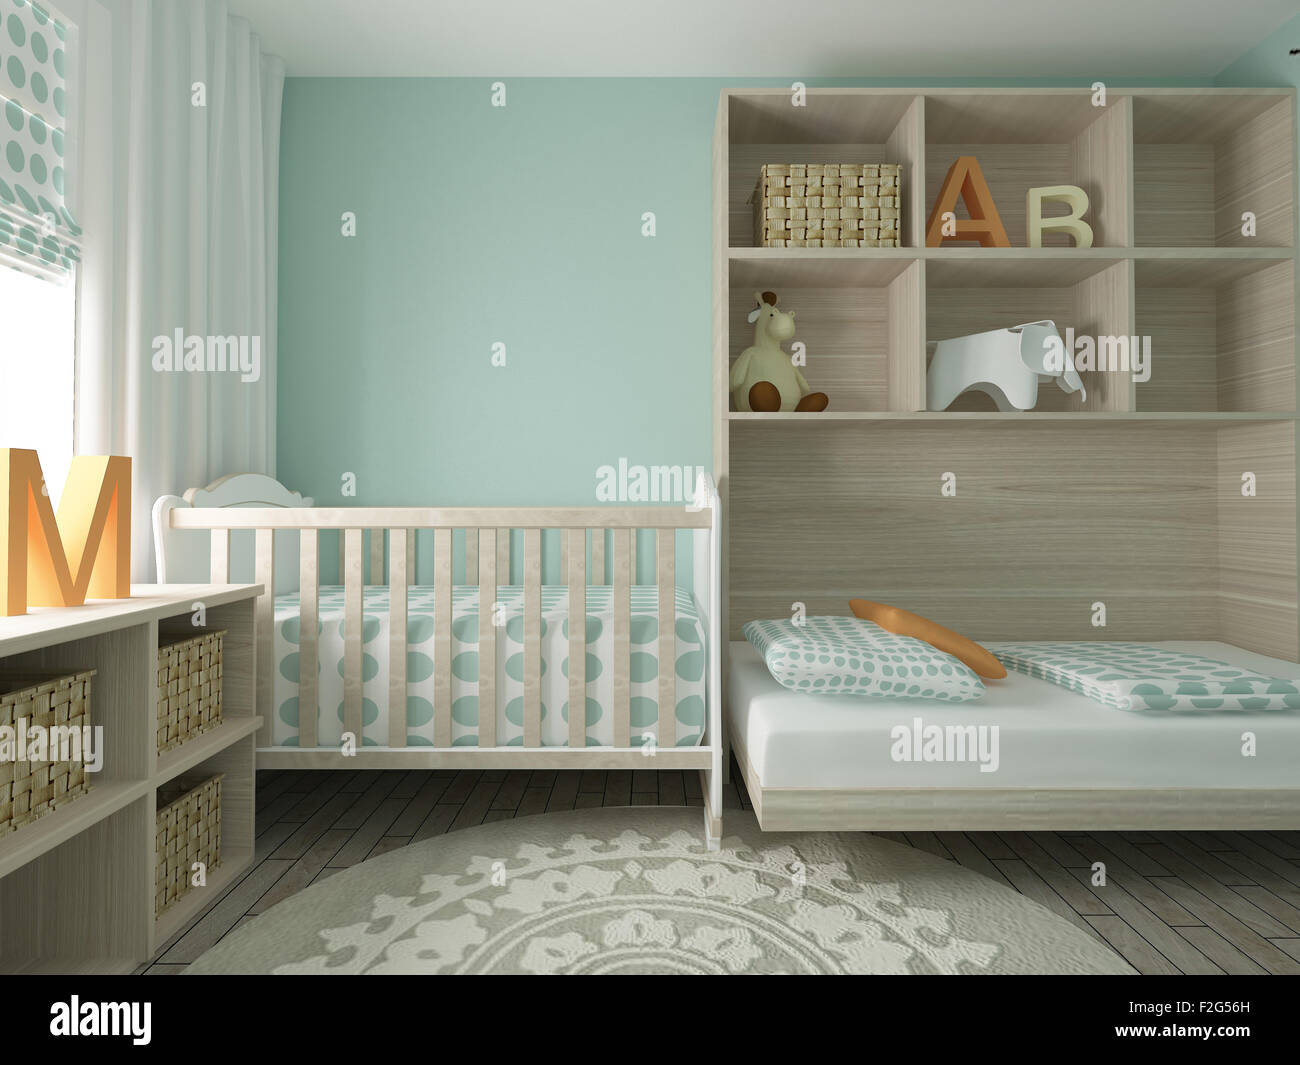 baby room nursery childrens room playroom interior design 3d